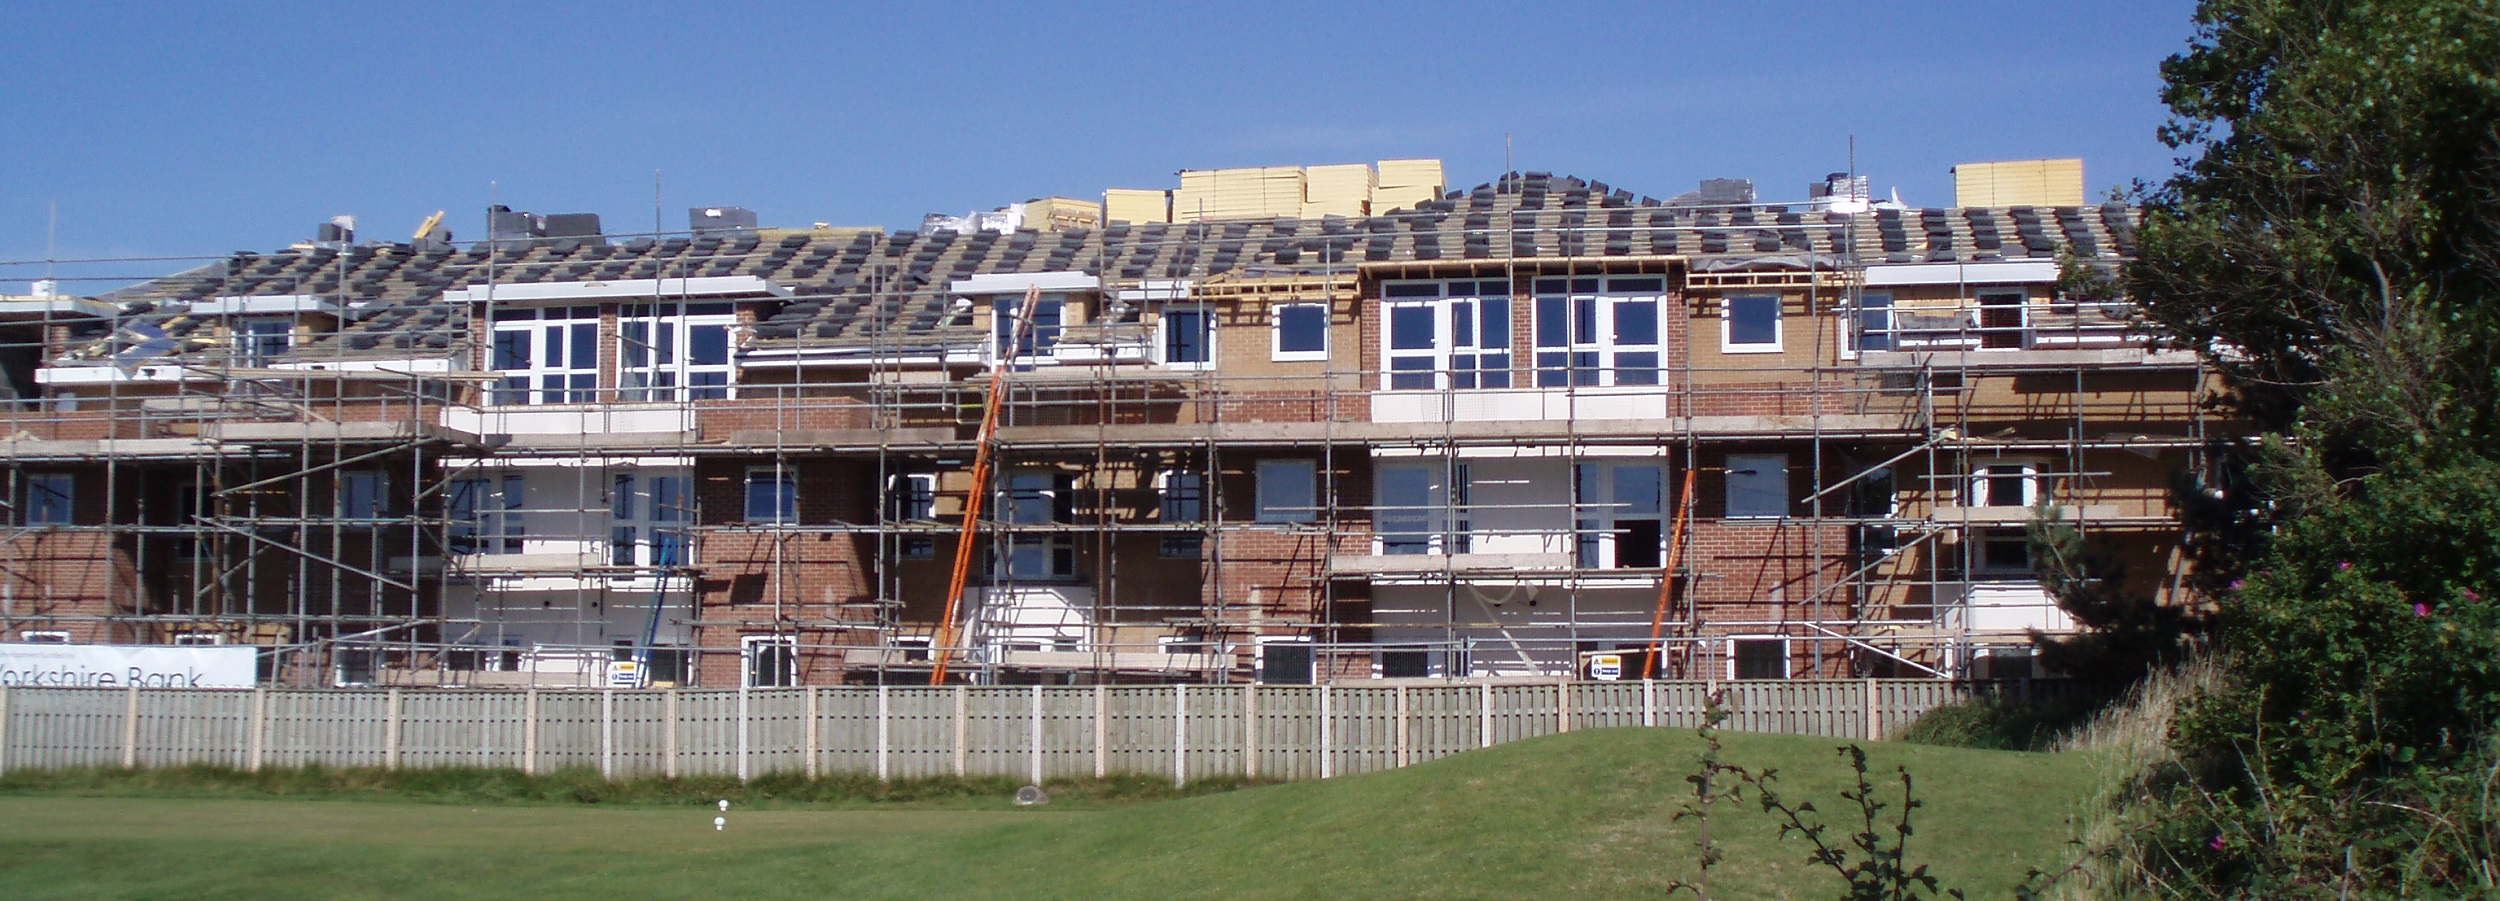 Supported housing being built